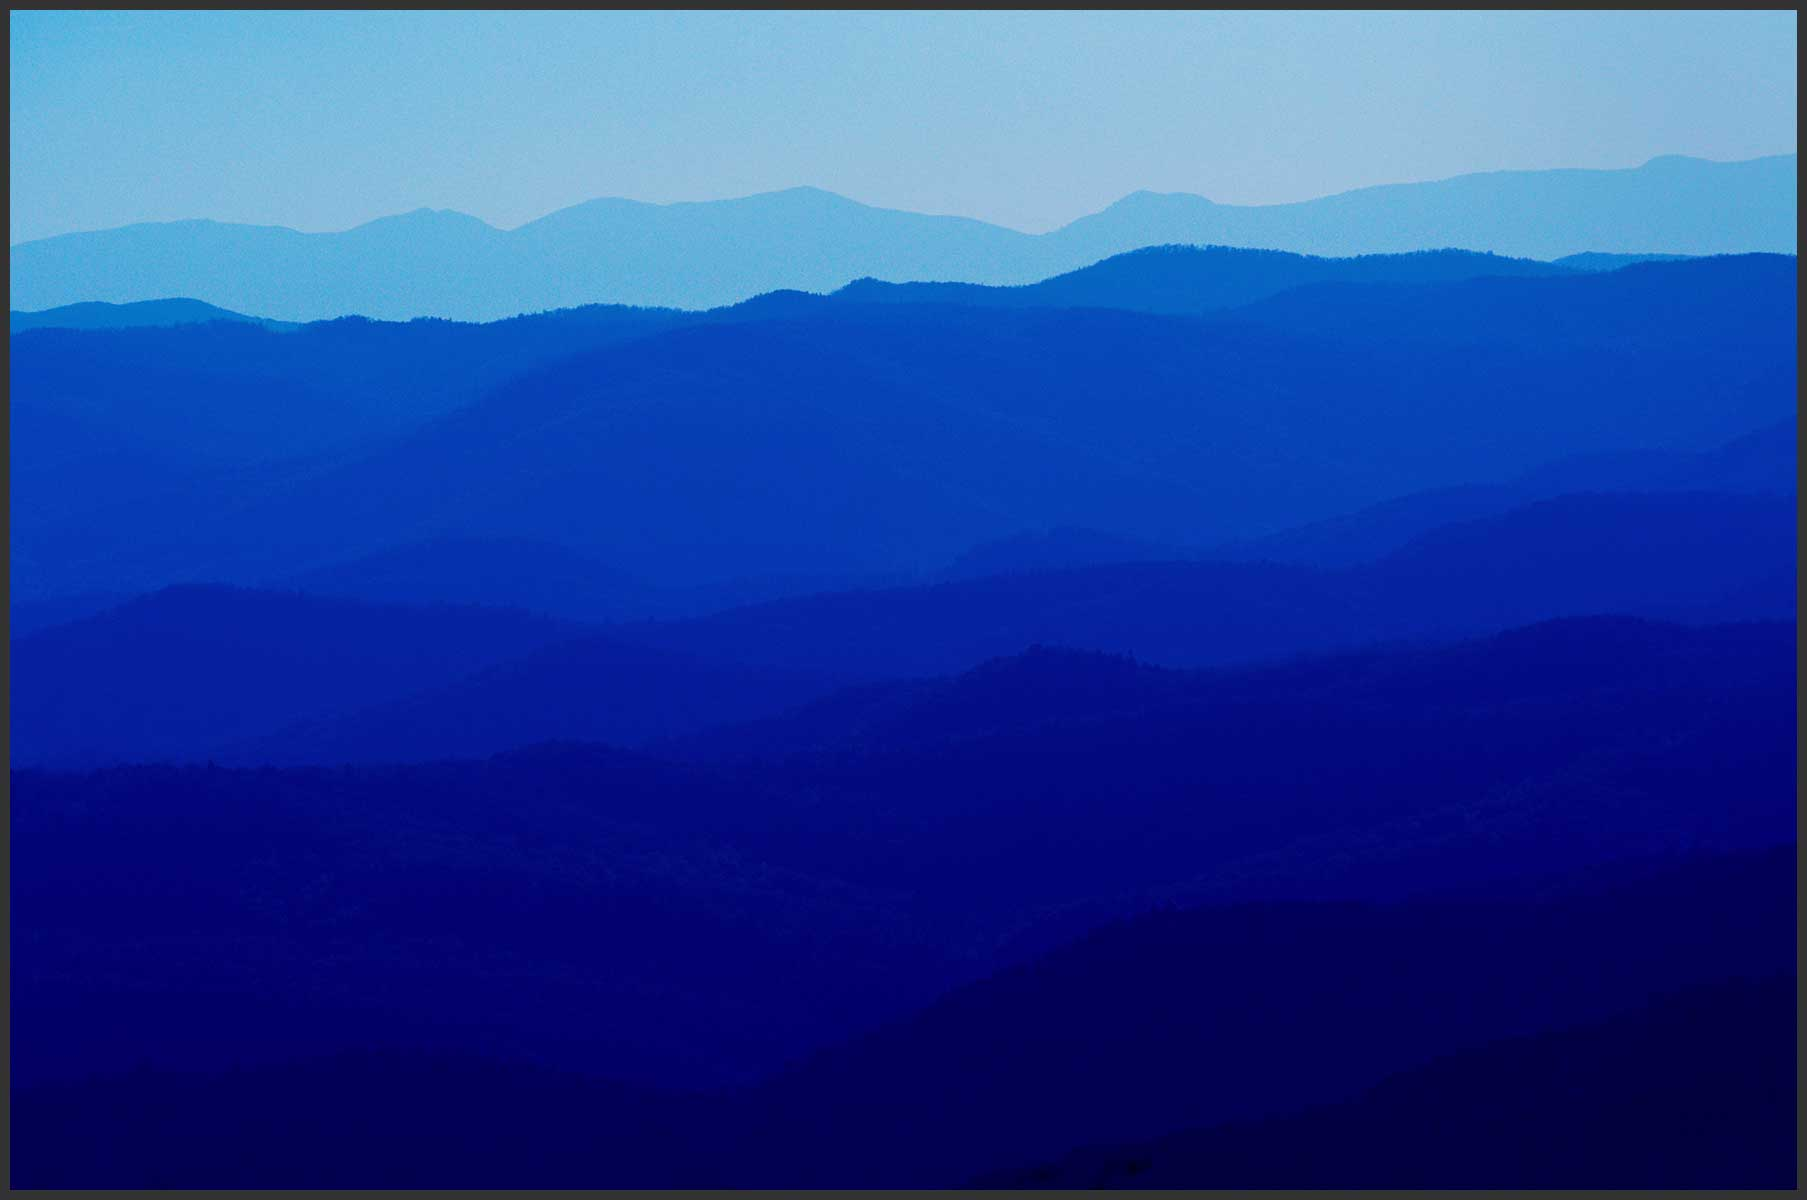 Scenics/Stock Blue Ridge Mountains